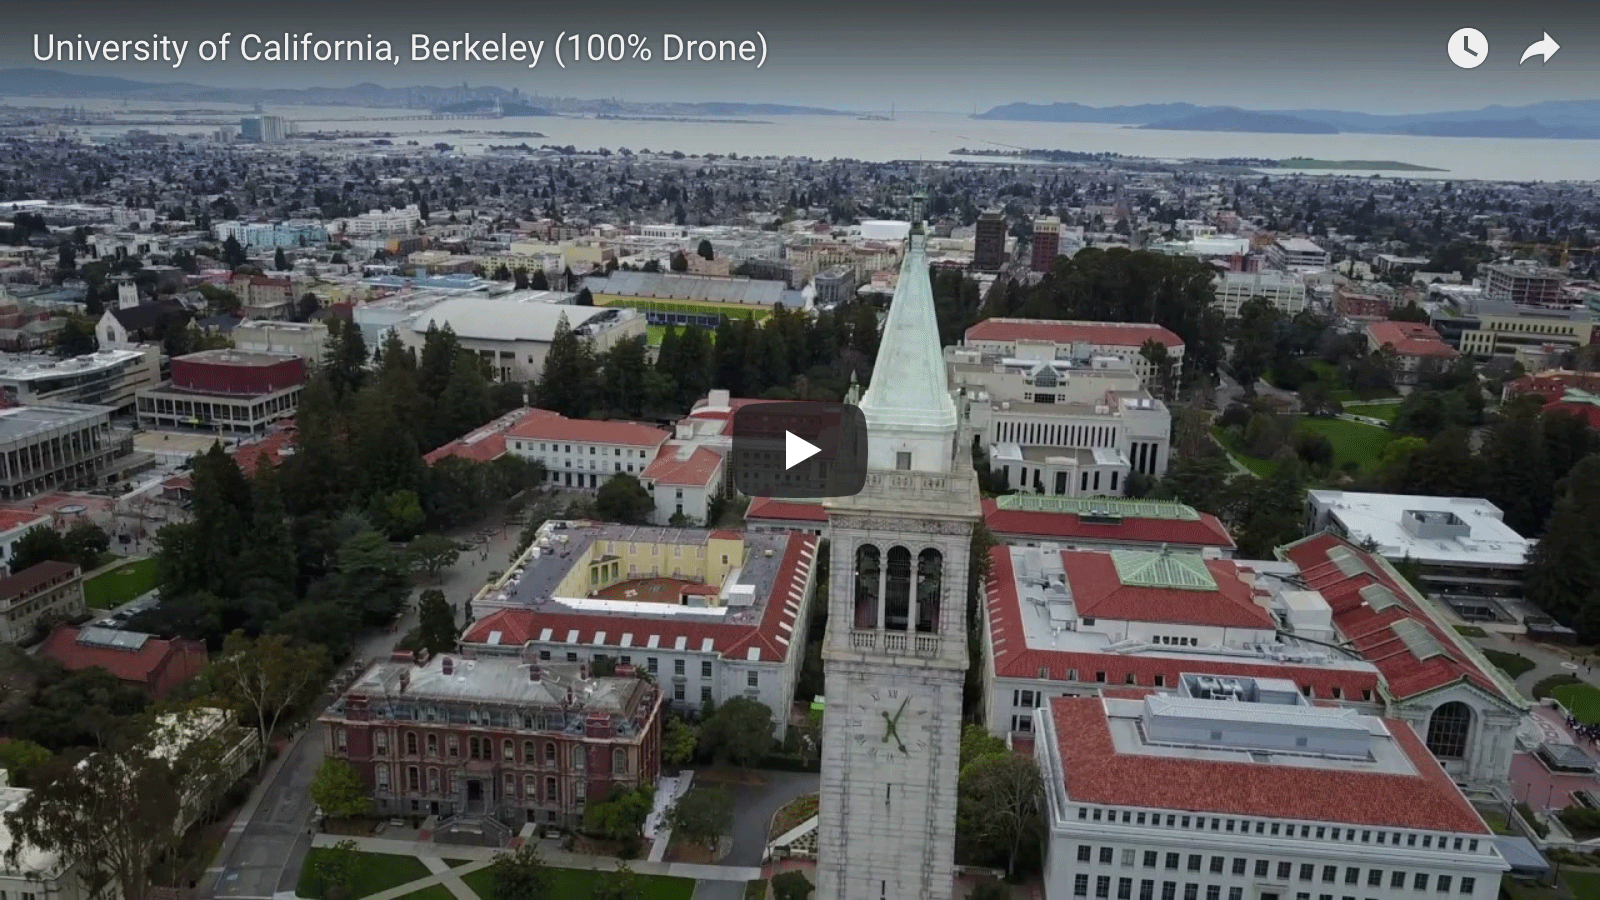 Drone Footage of UC Berkeley Campus